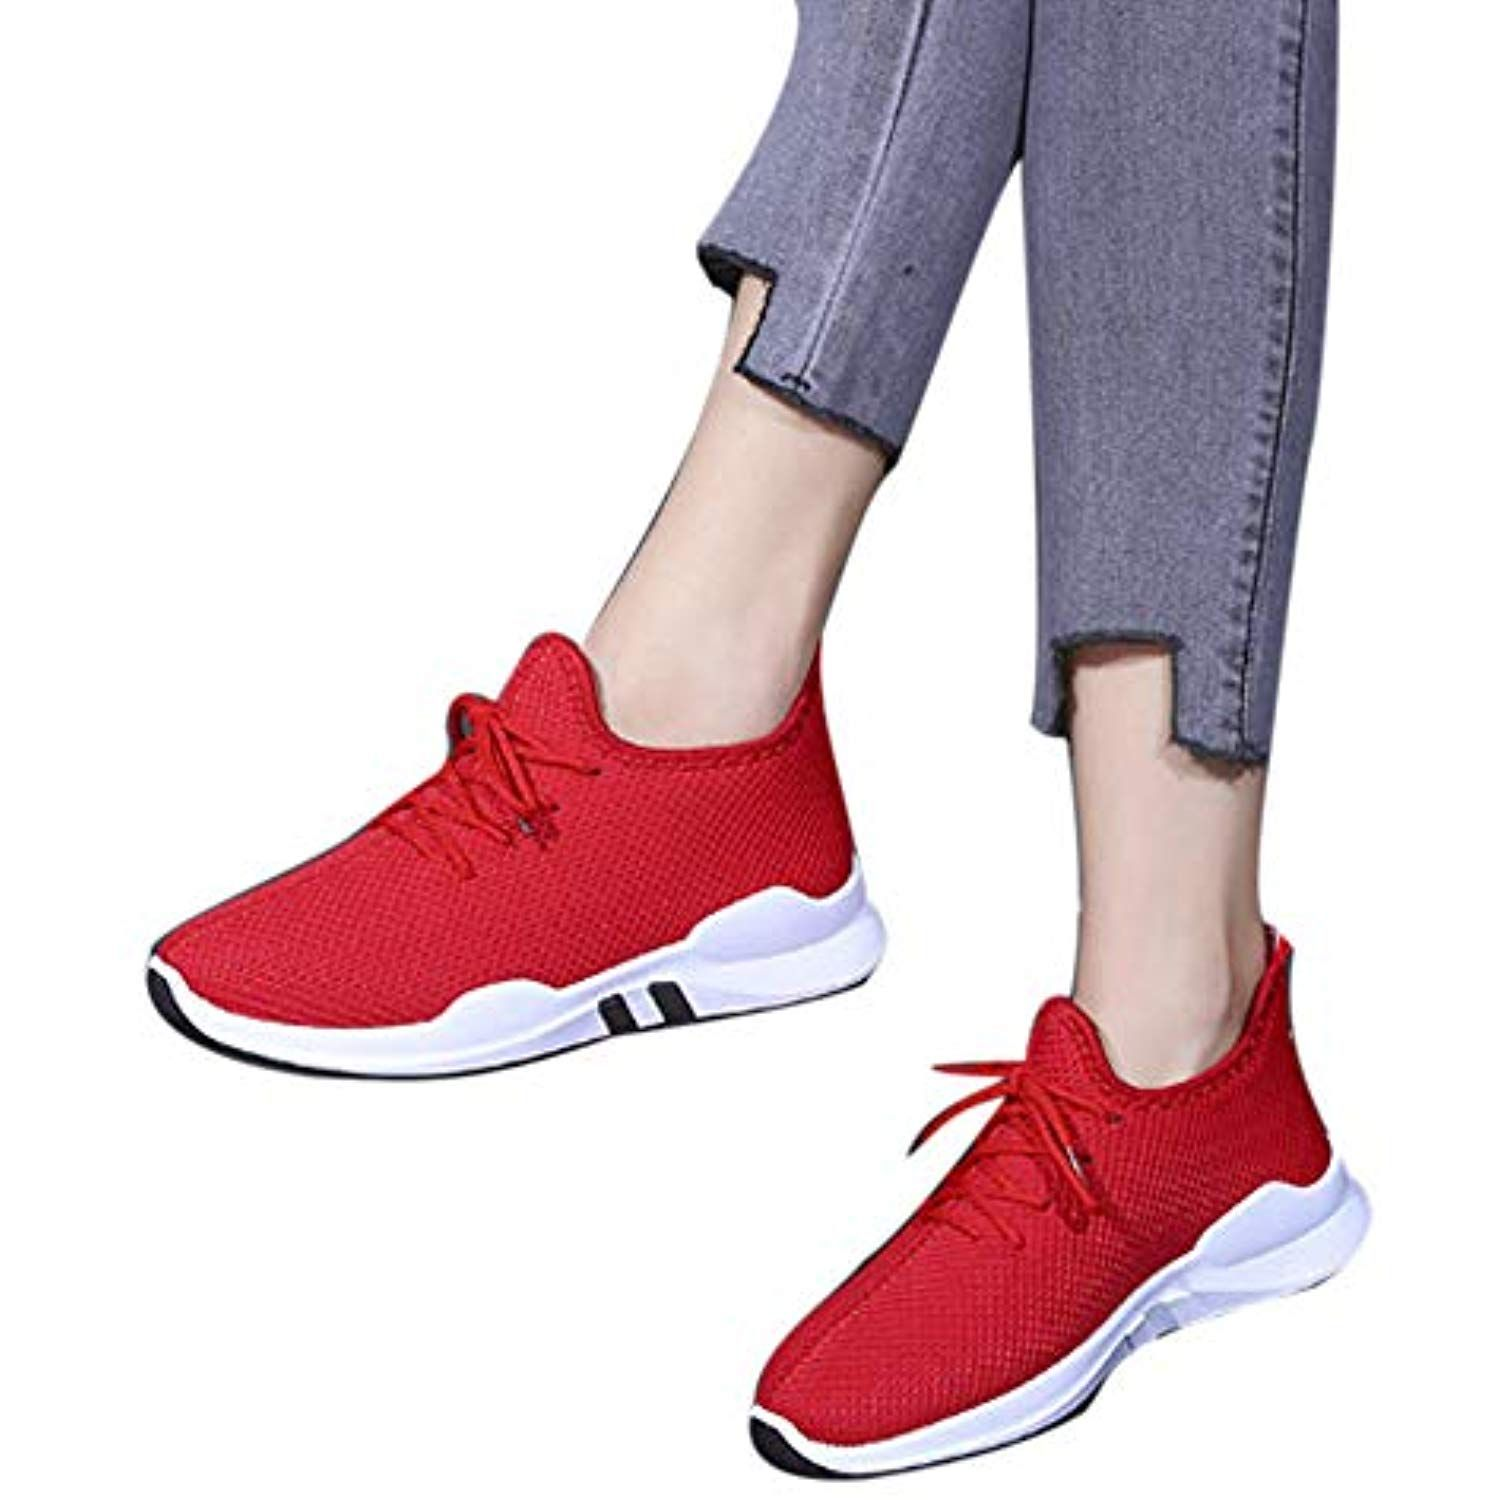 Ladies New Womens Running Trainers Lace Up Shoes Comfy Fitness Gym Sports